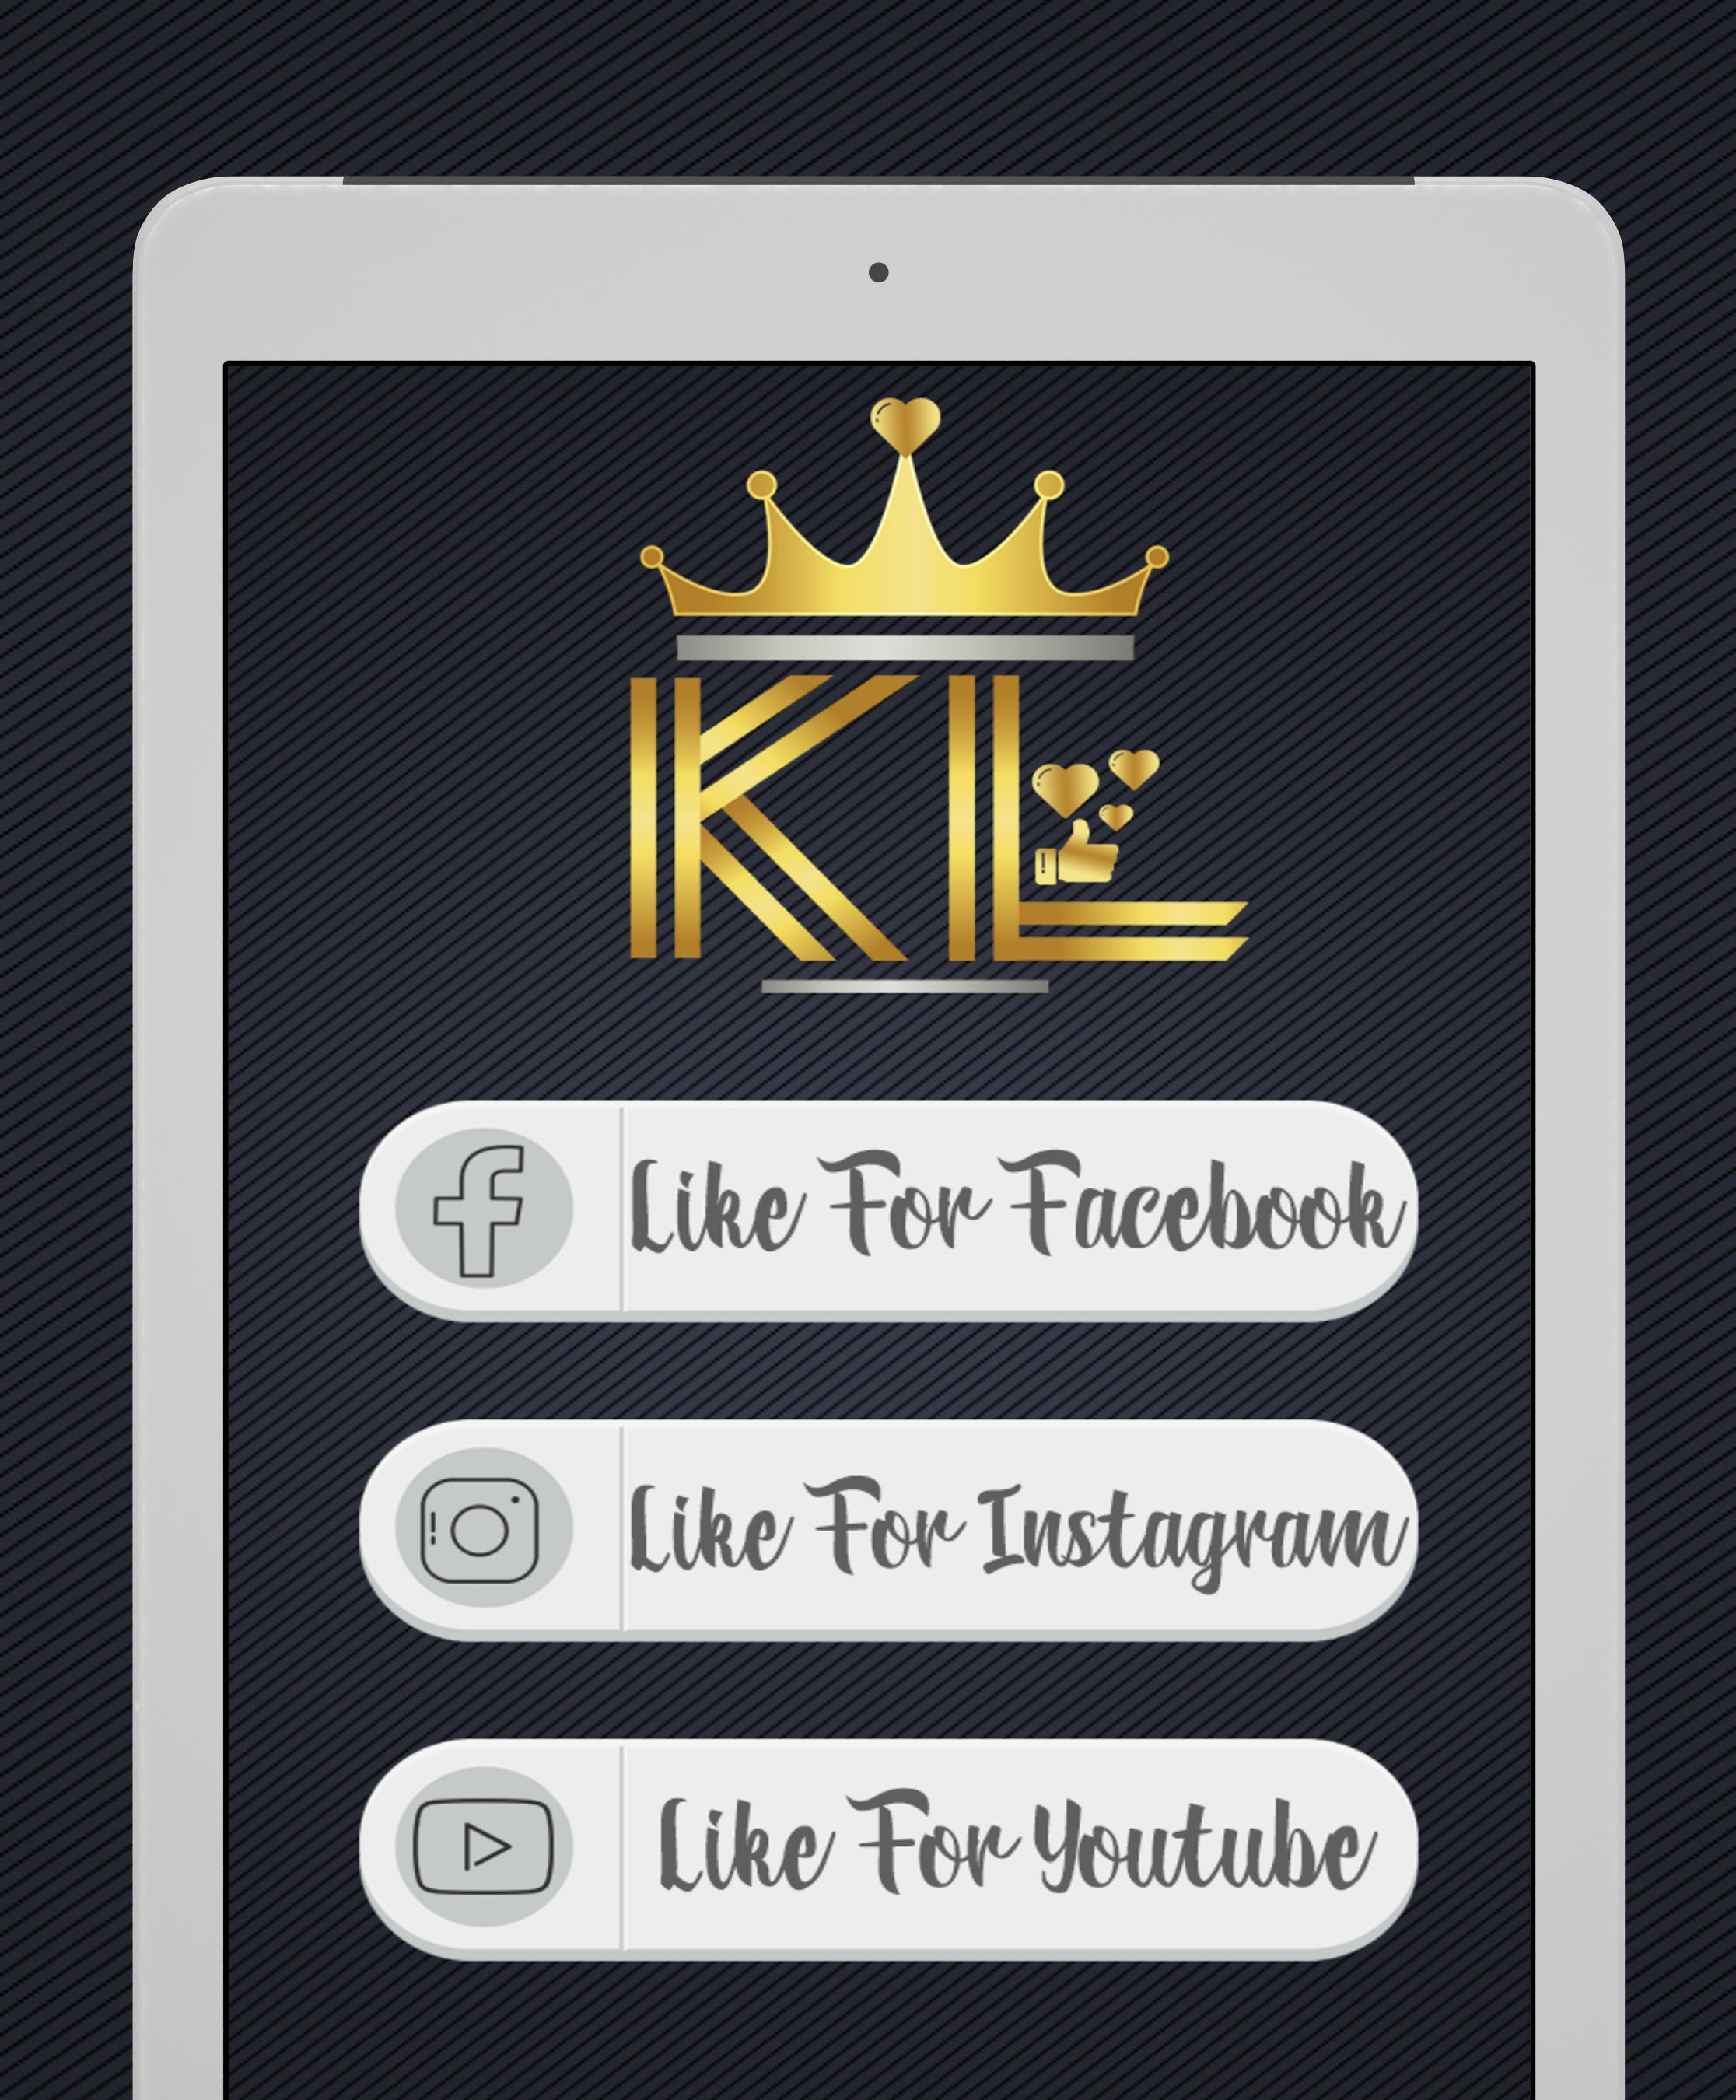 King Social Auto Liker for Android - APK Download